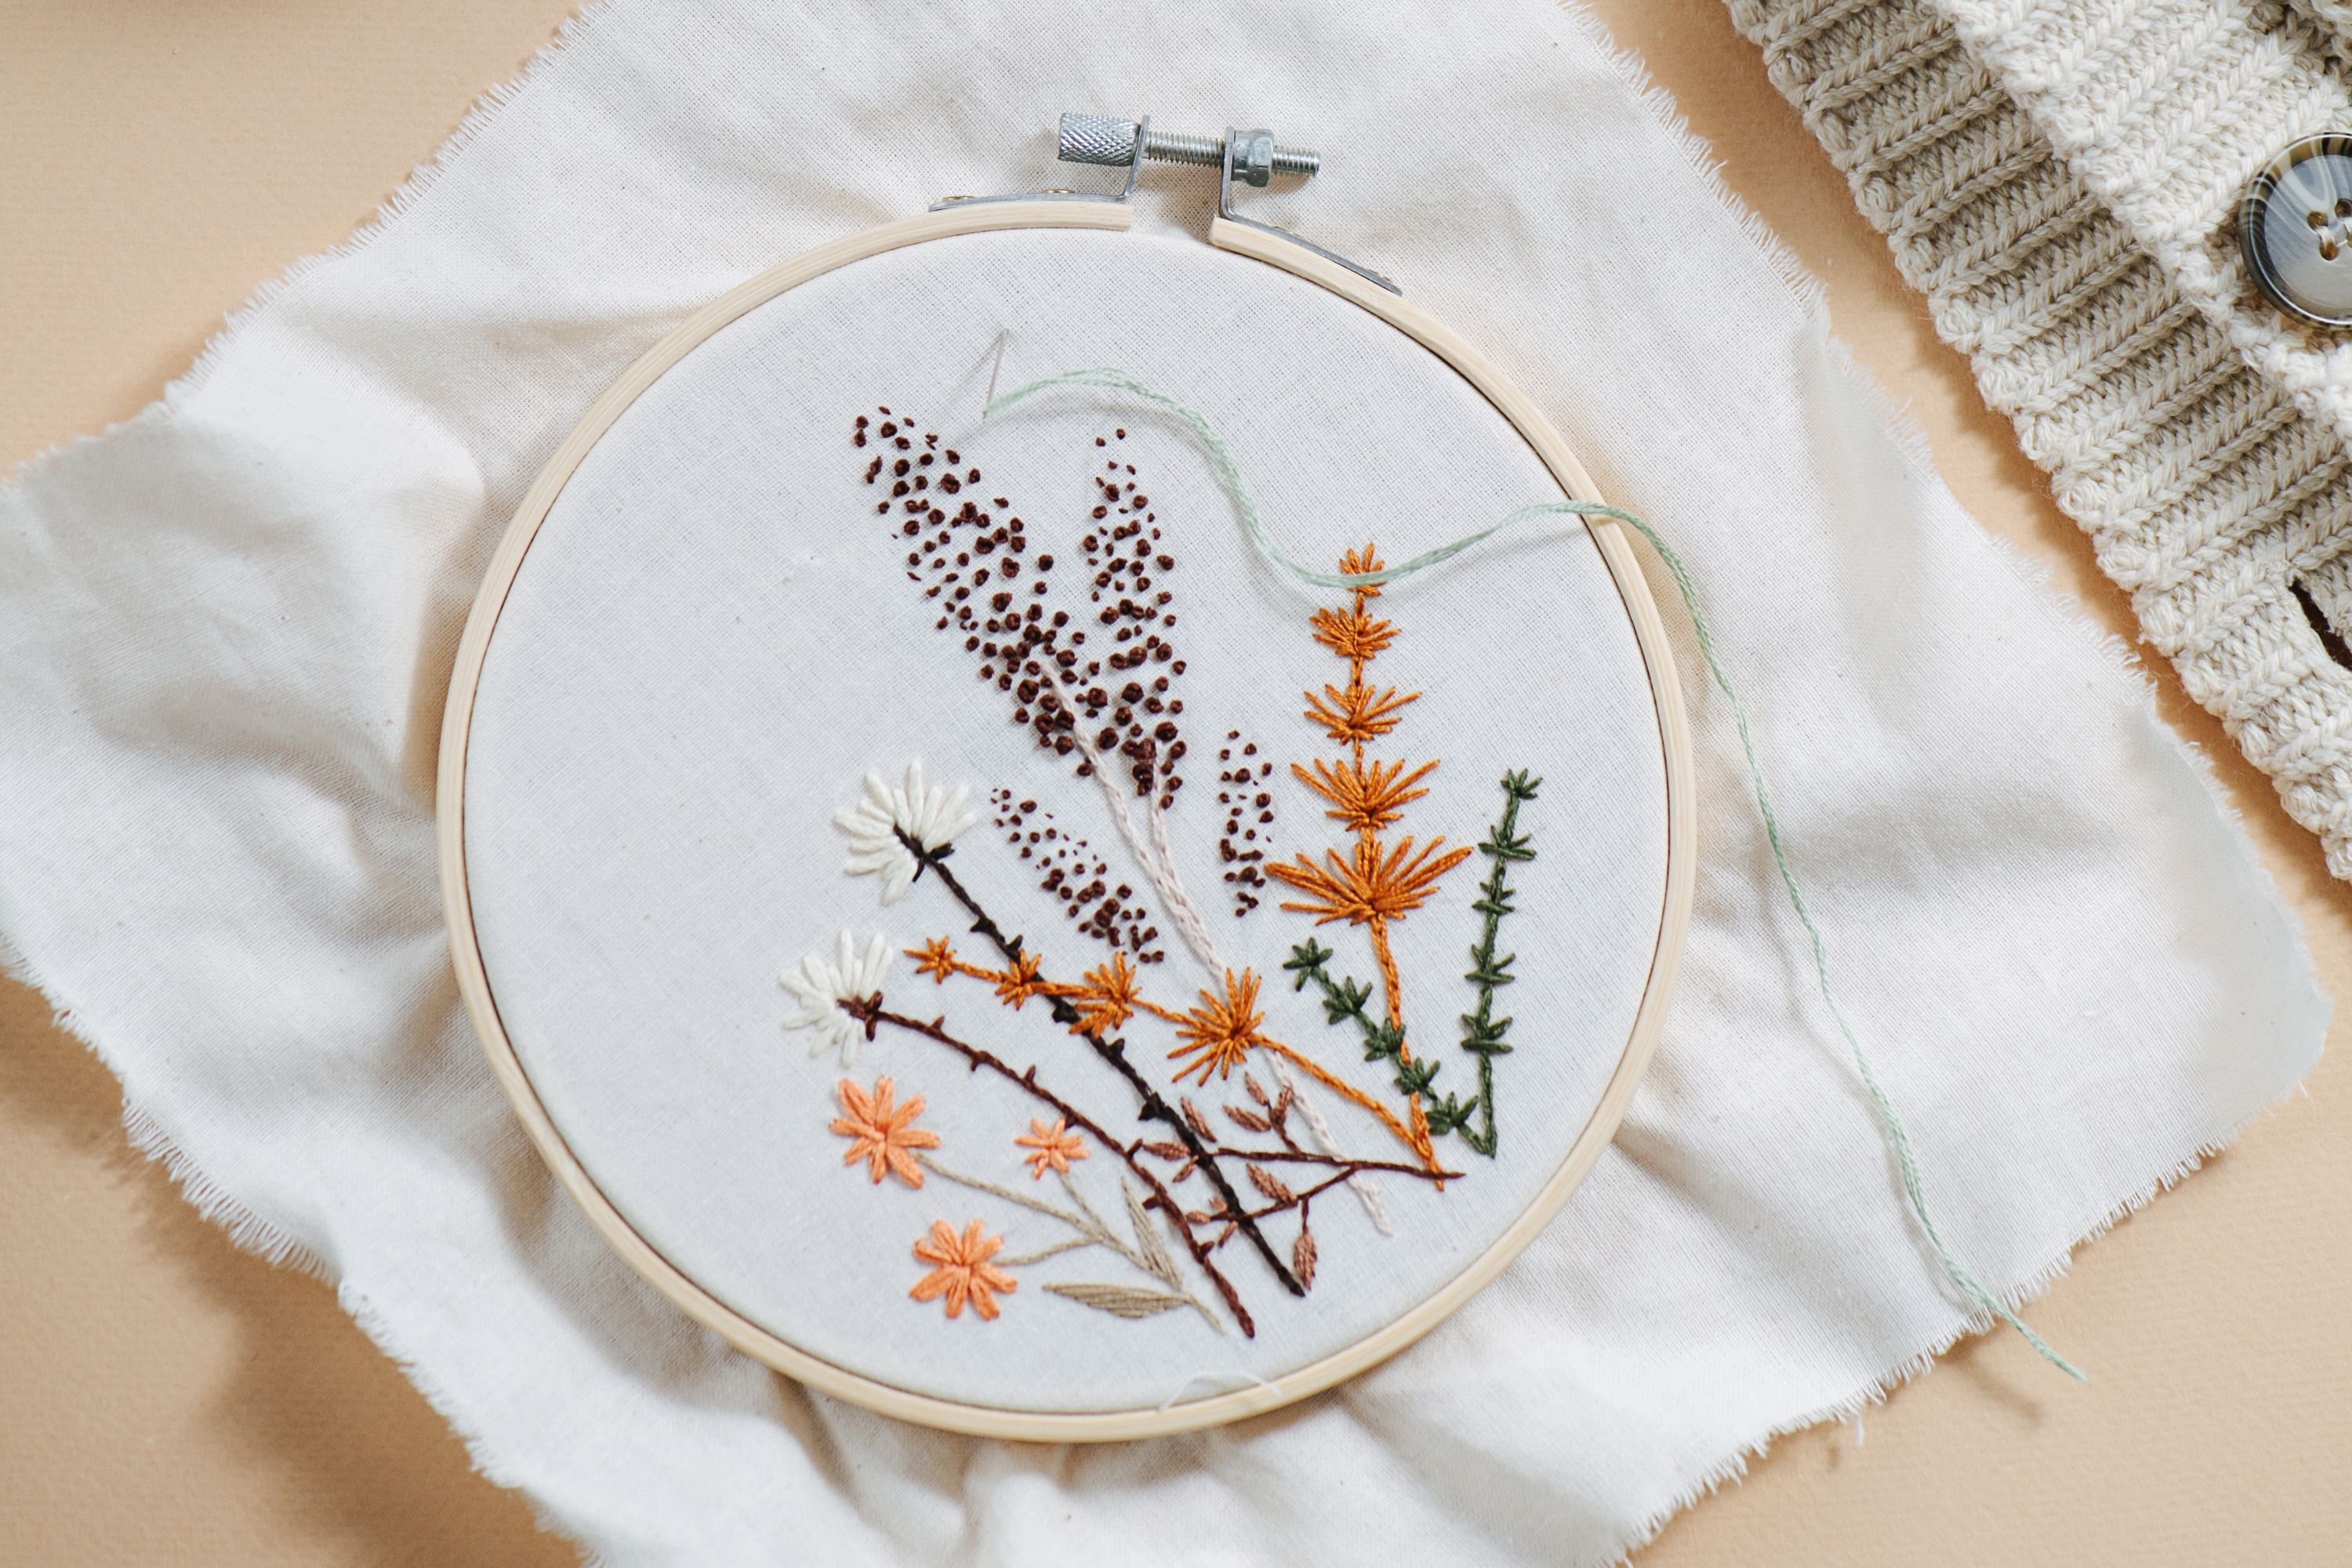 20 Genius Christmas Gifts Ideas to Surprise Your Family and Friends embroidery